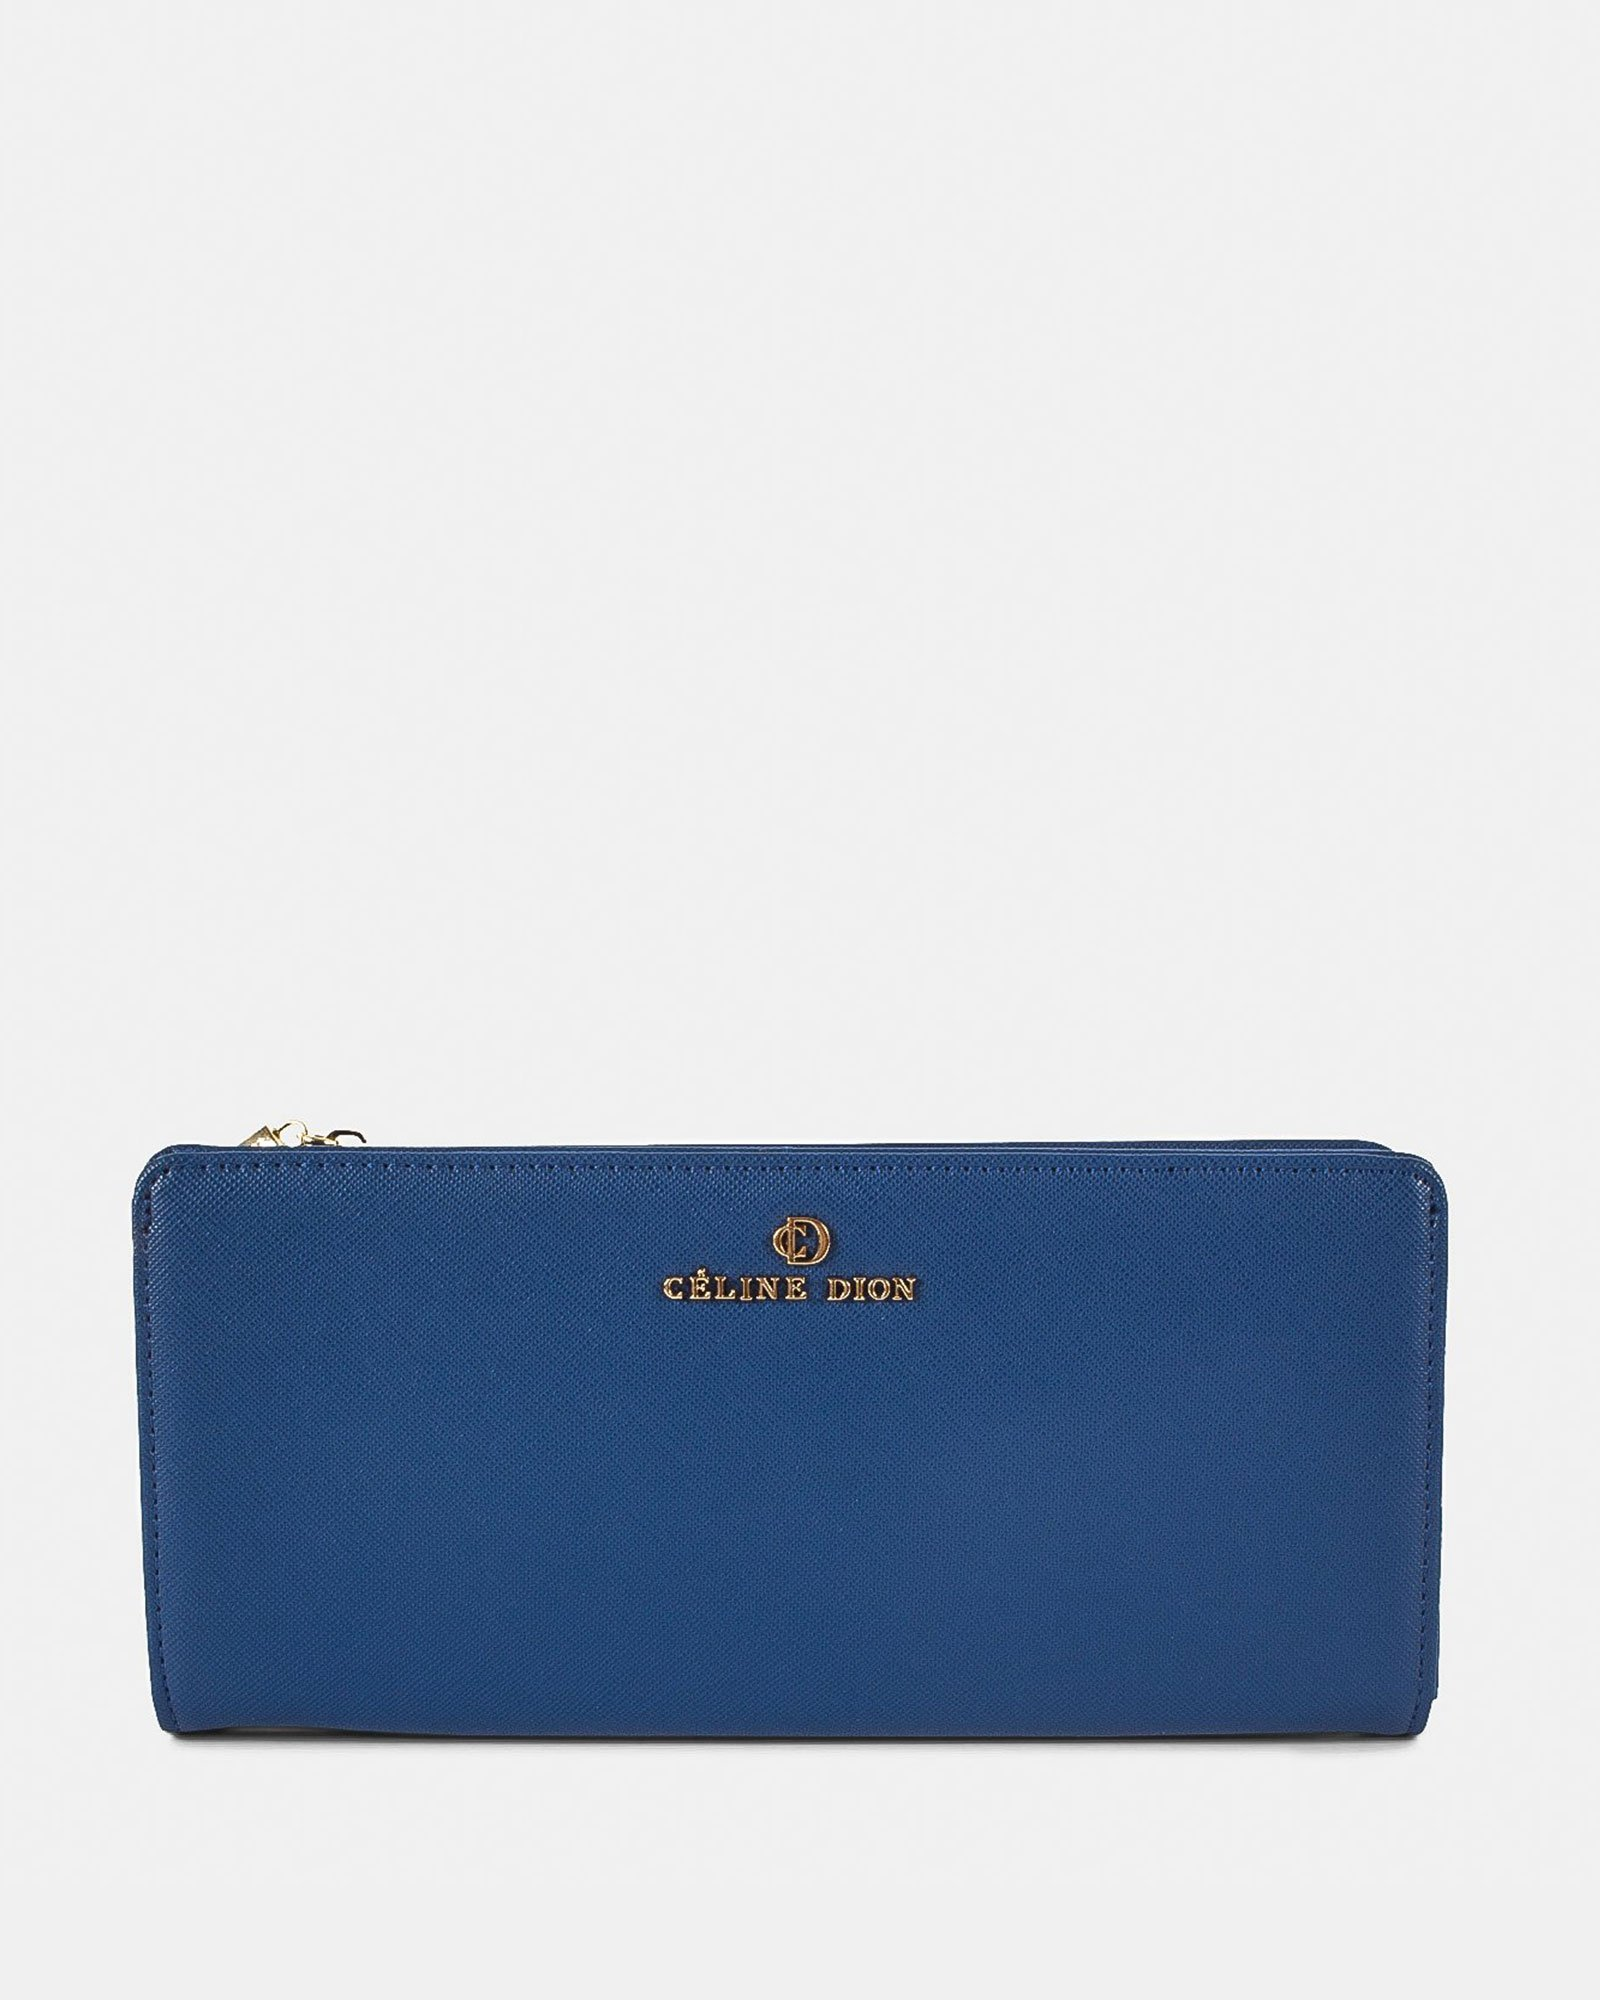 GRAZIOSO - Long Wallet with zipped - Indigo - Céline Dion - Zoom